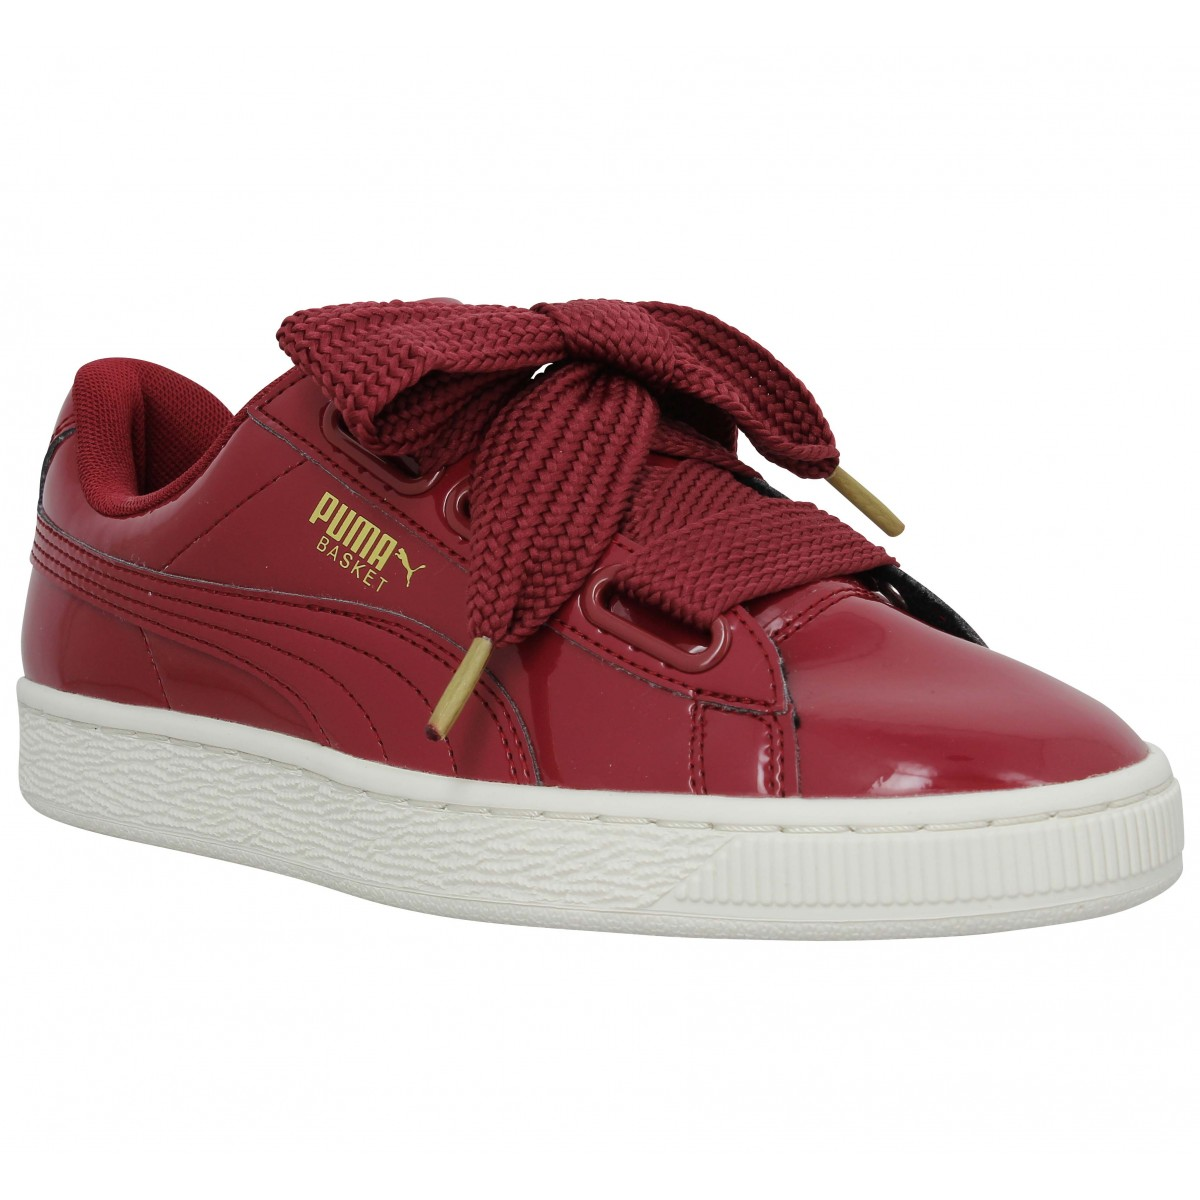 puma basket heart patent femme red femme fanny chaussures. Black Bedroom Furniture Sets. Home Design Ideas